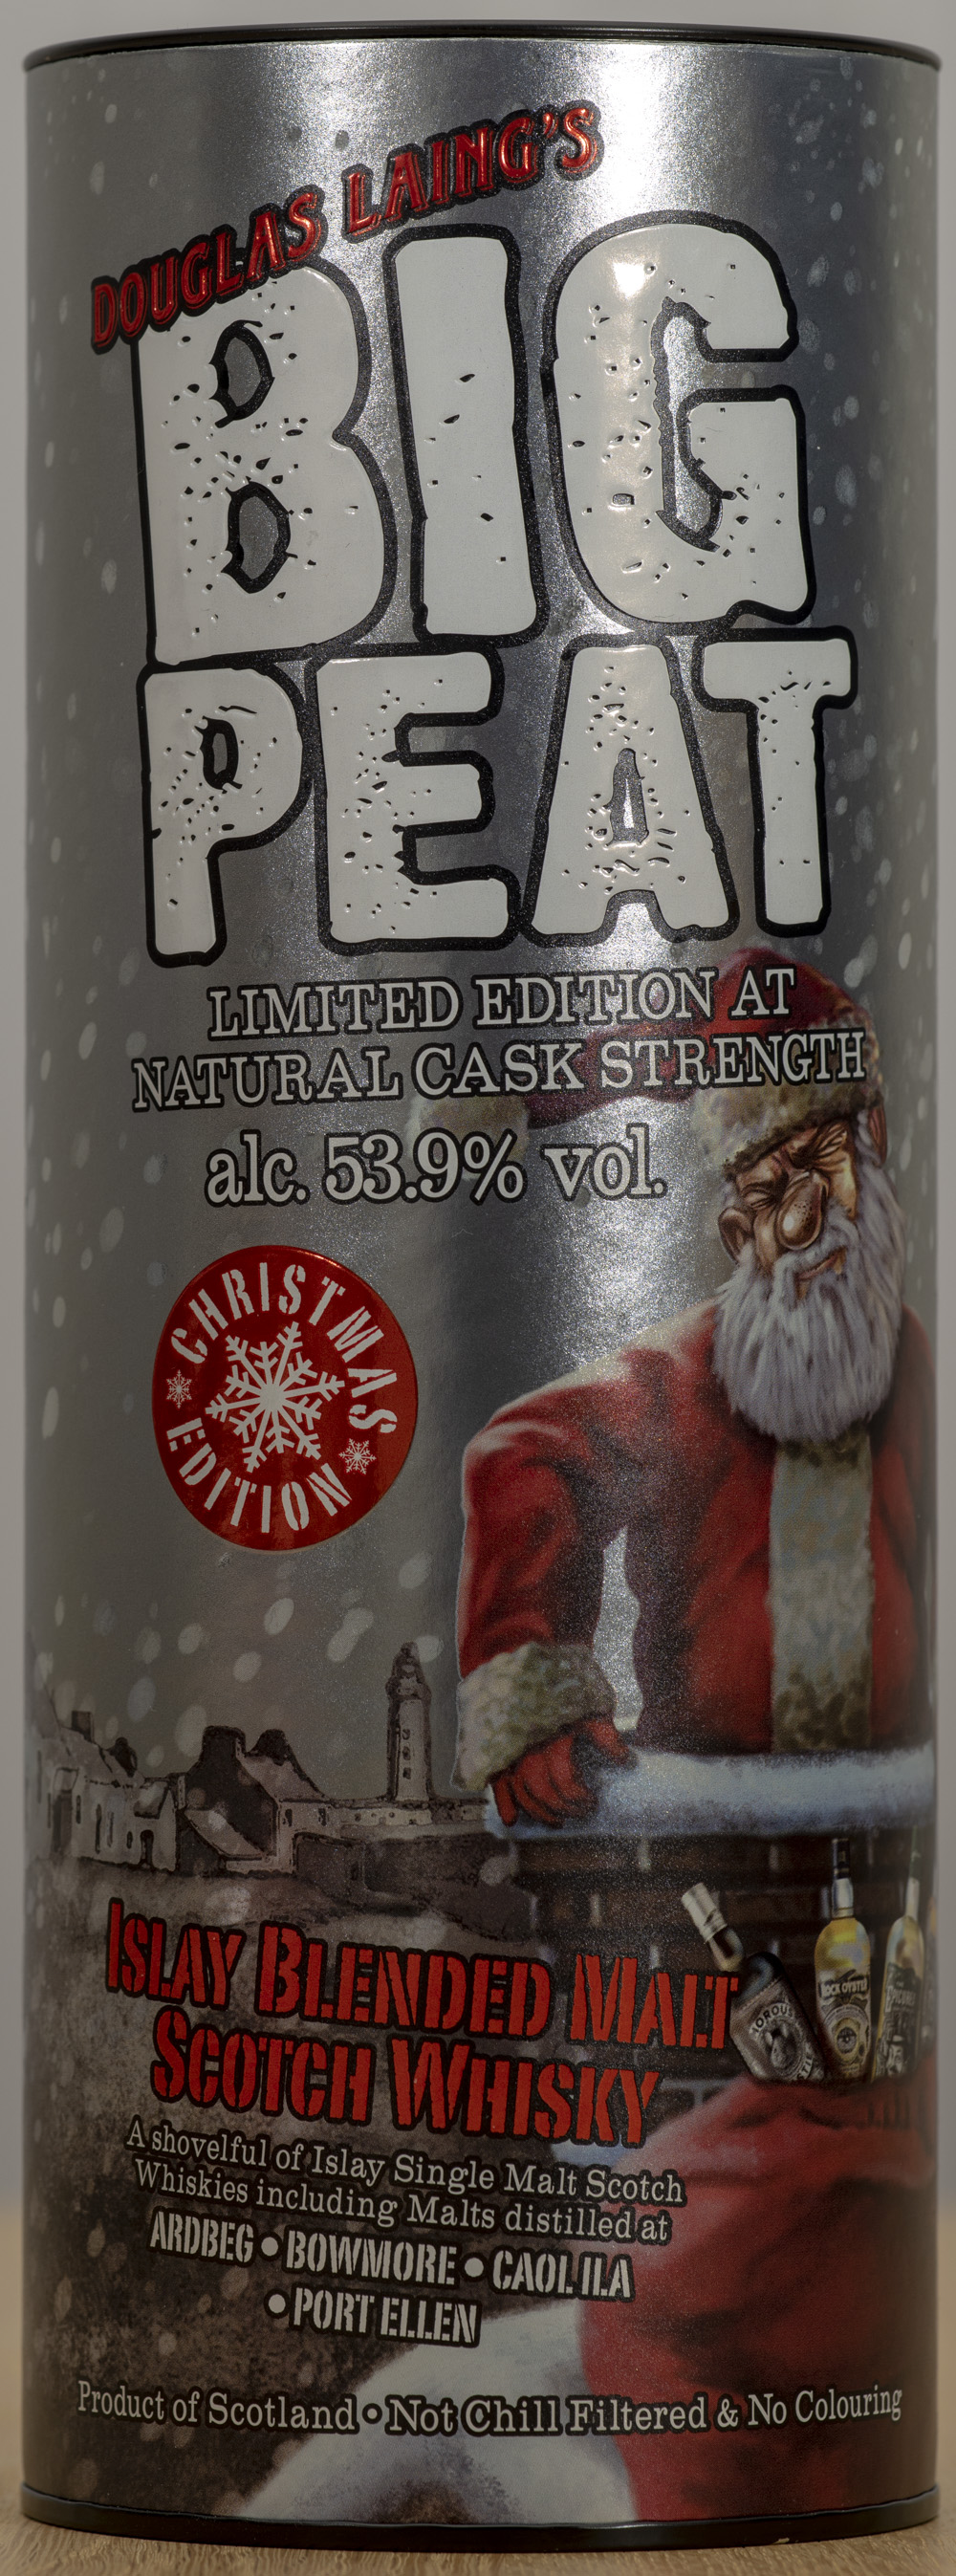 Billede: PHC_1564 - Big Peat Christmas Edition 2018 - tube front.jpg